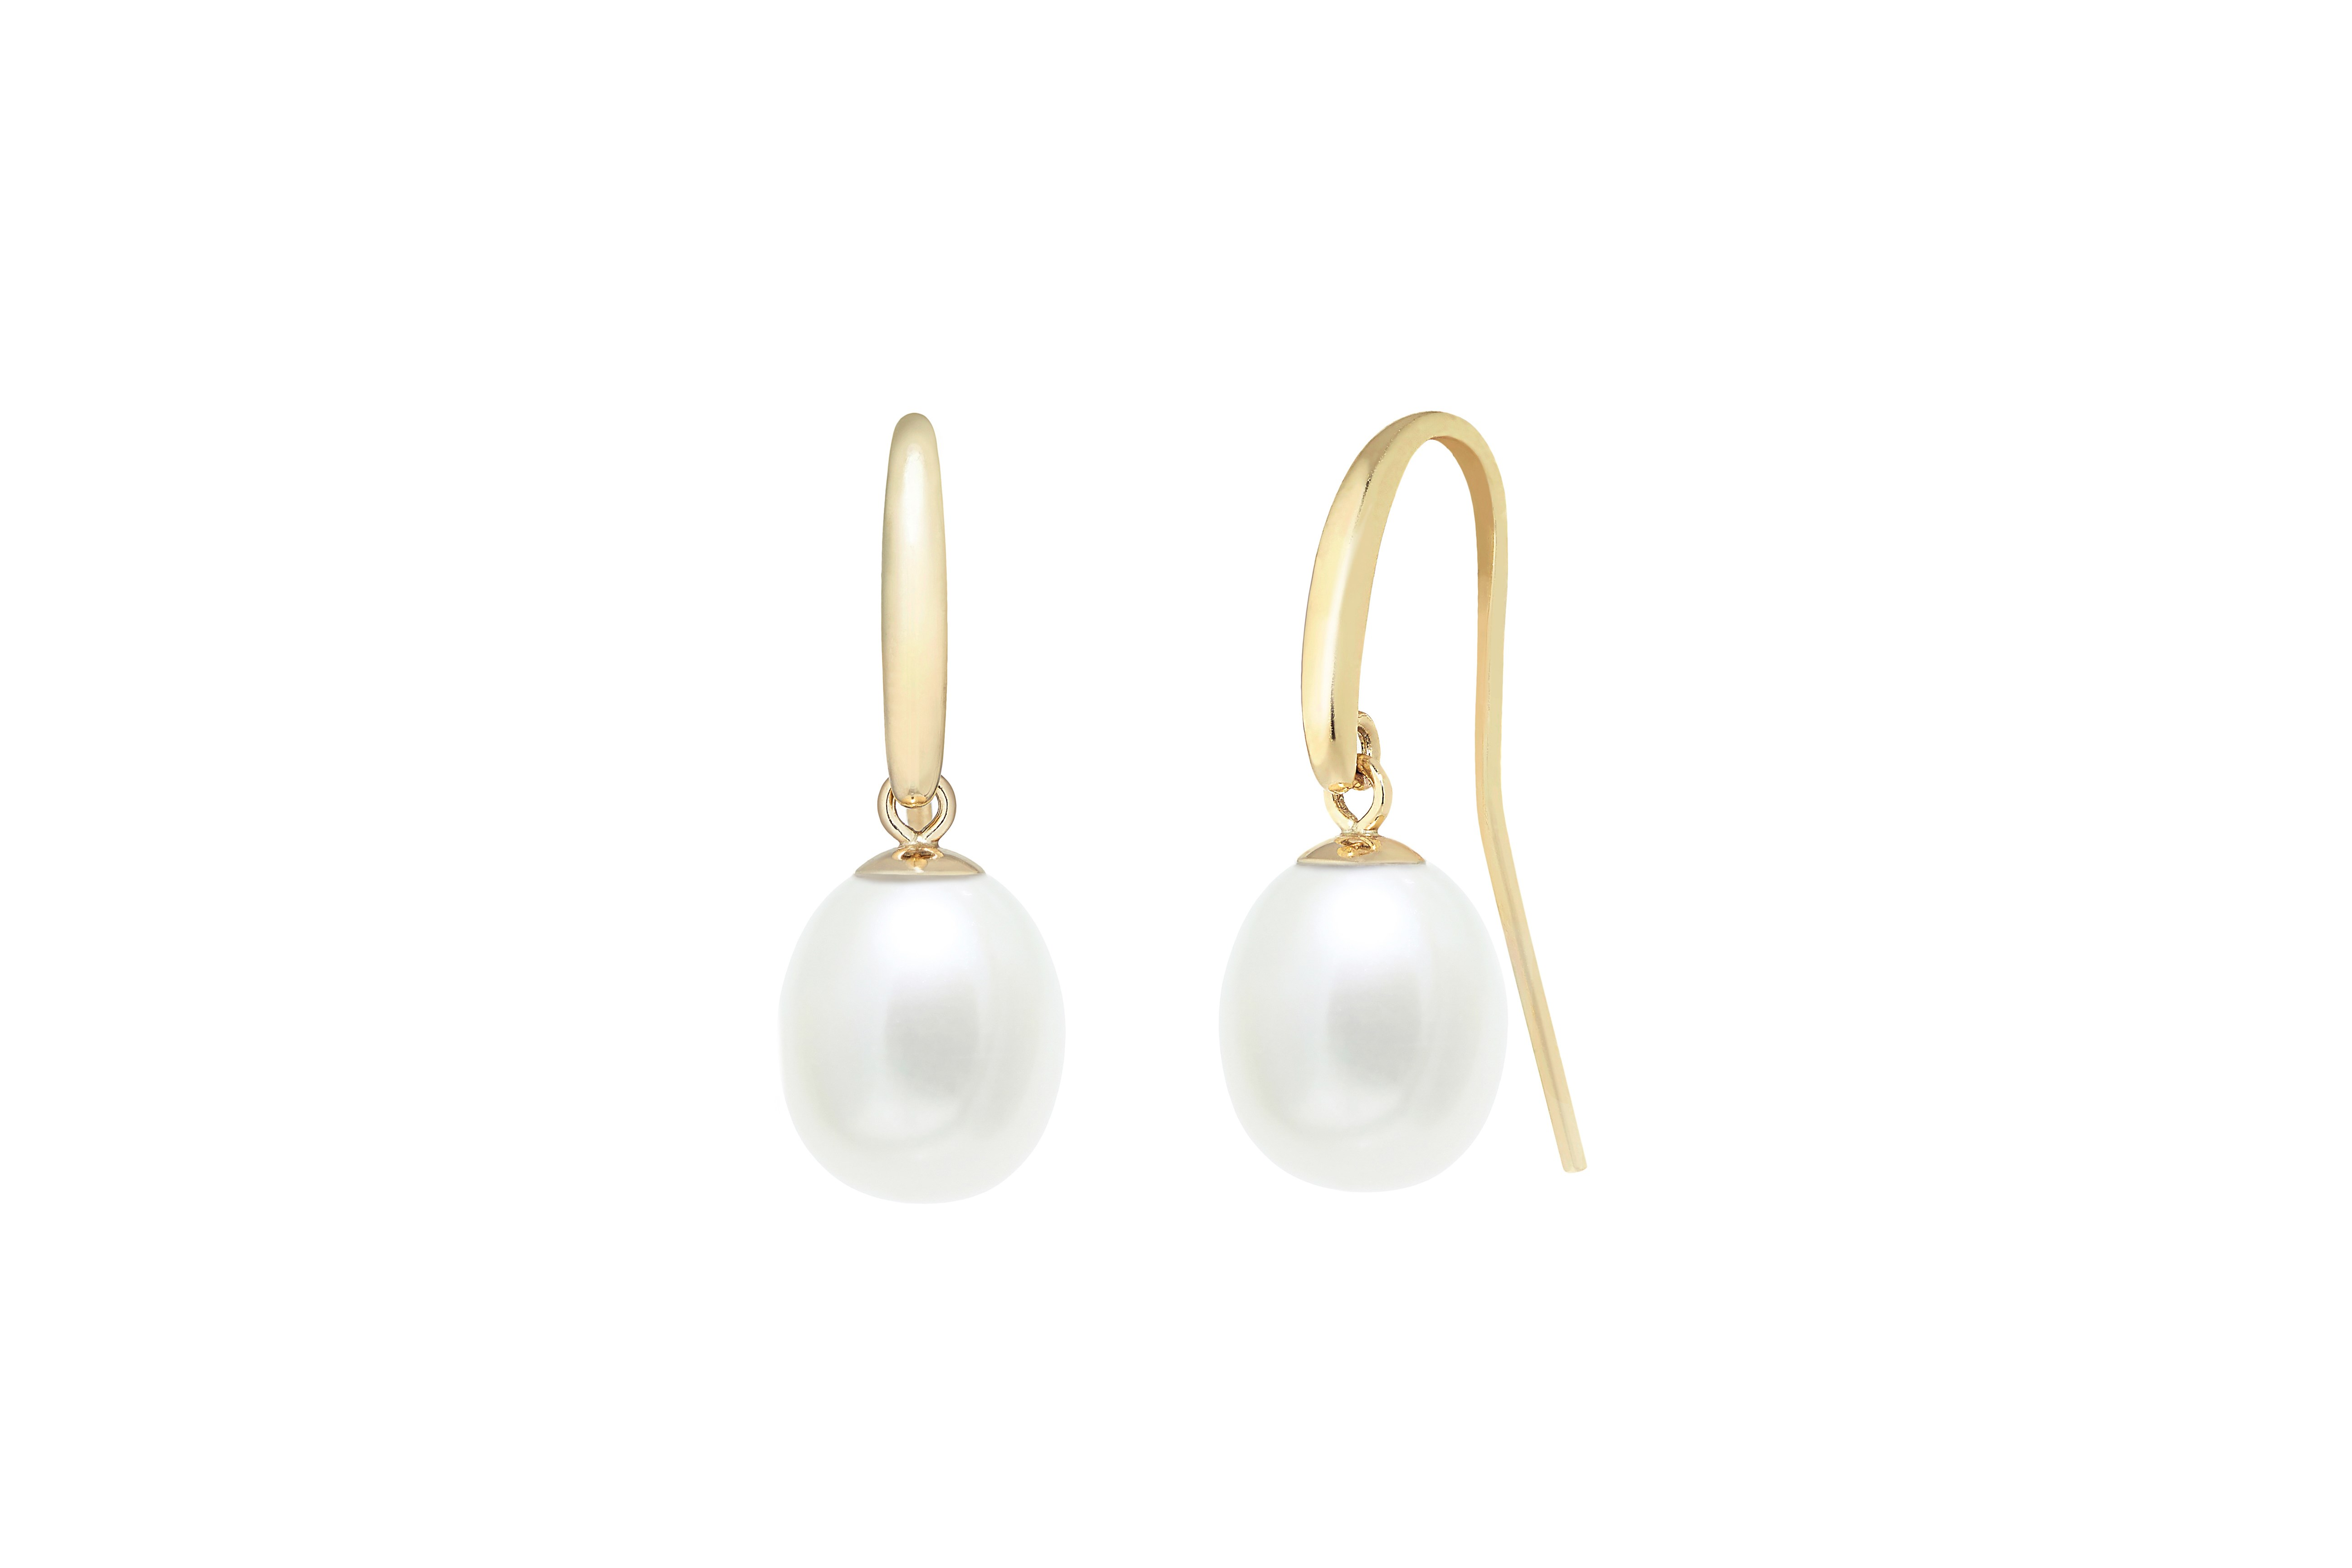 9ct yellow gold white pearl earring